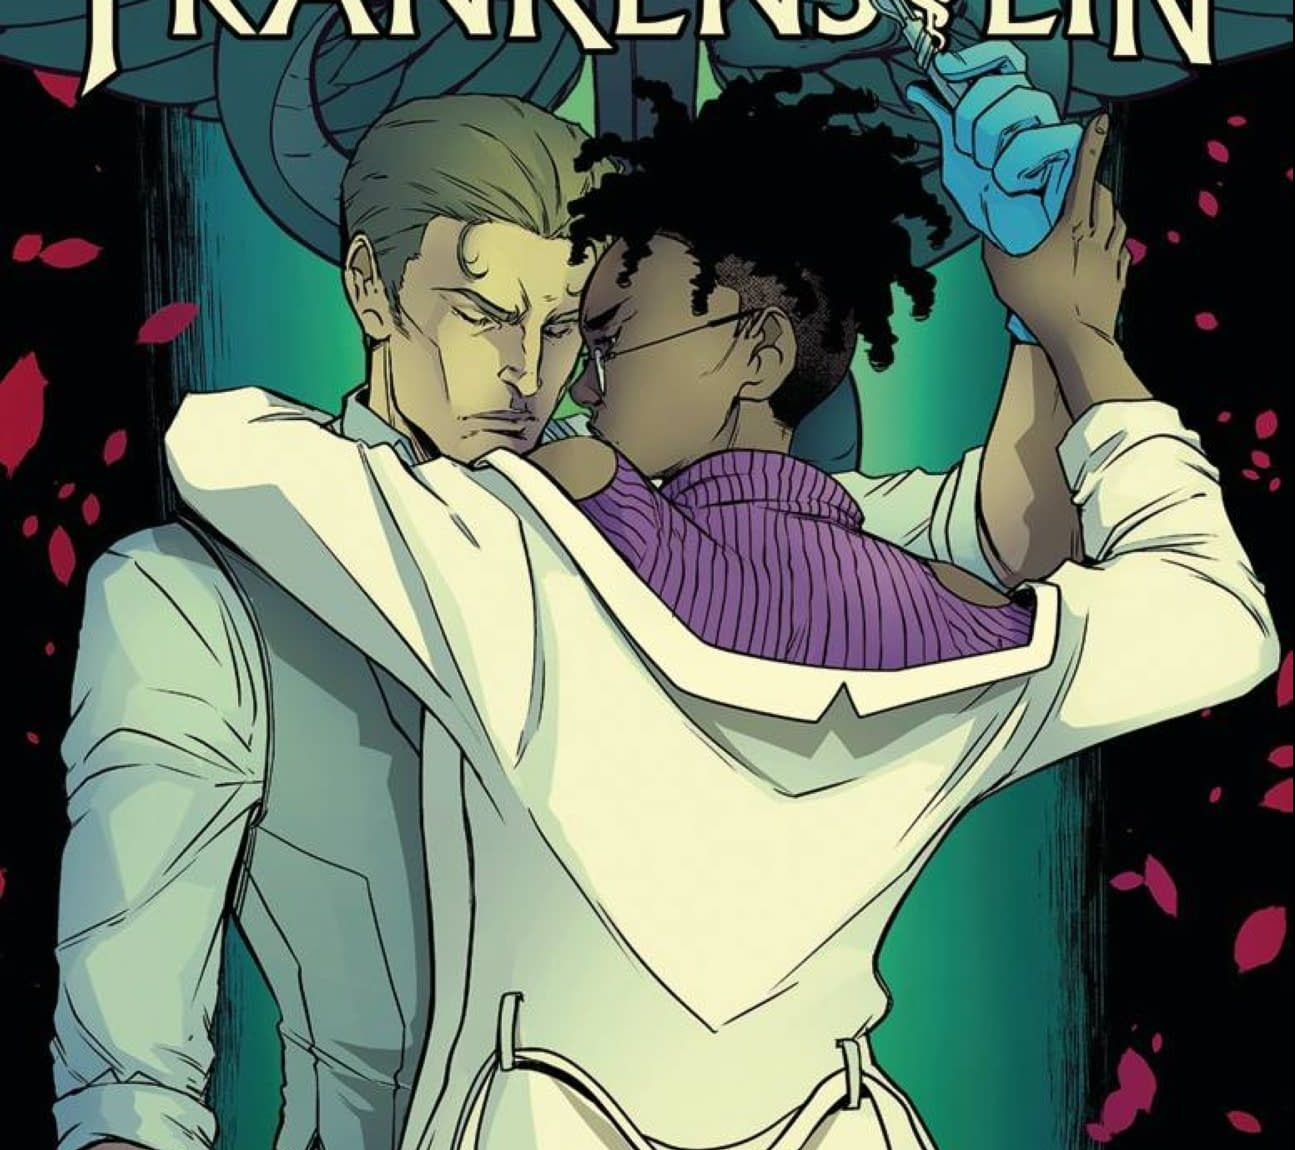 'The Modern Frankenstein' #1 delivers on its premise in a great debut installment